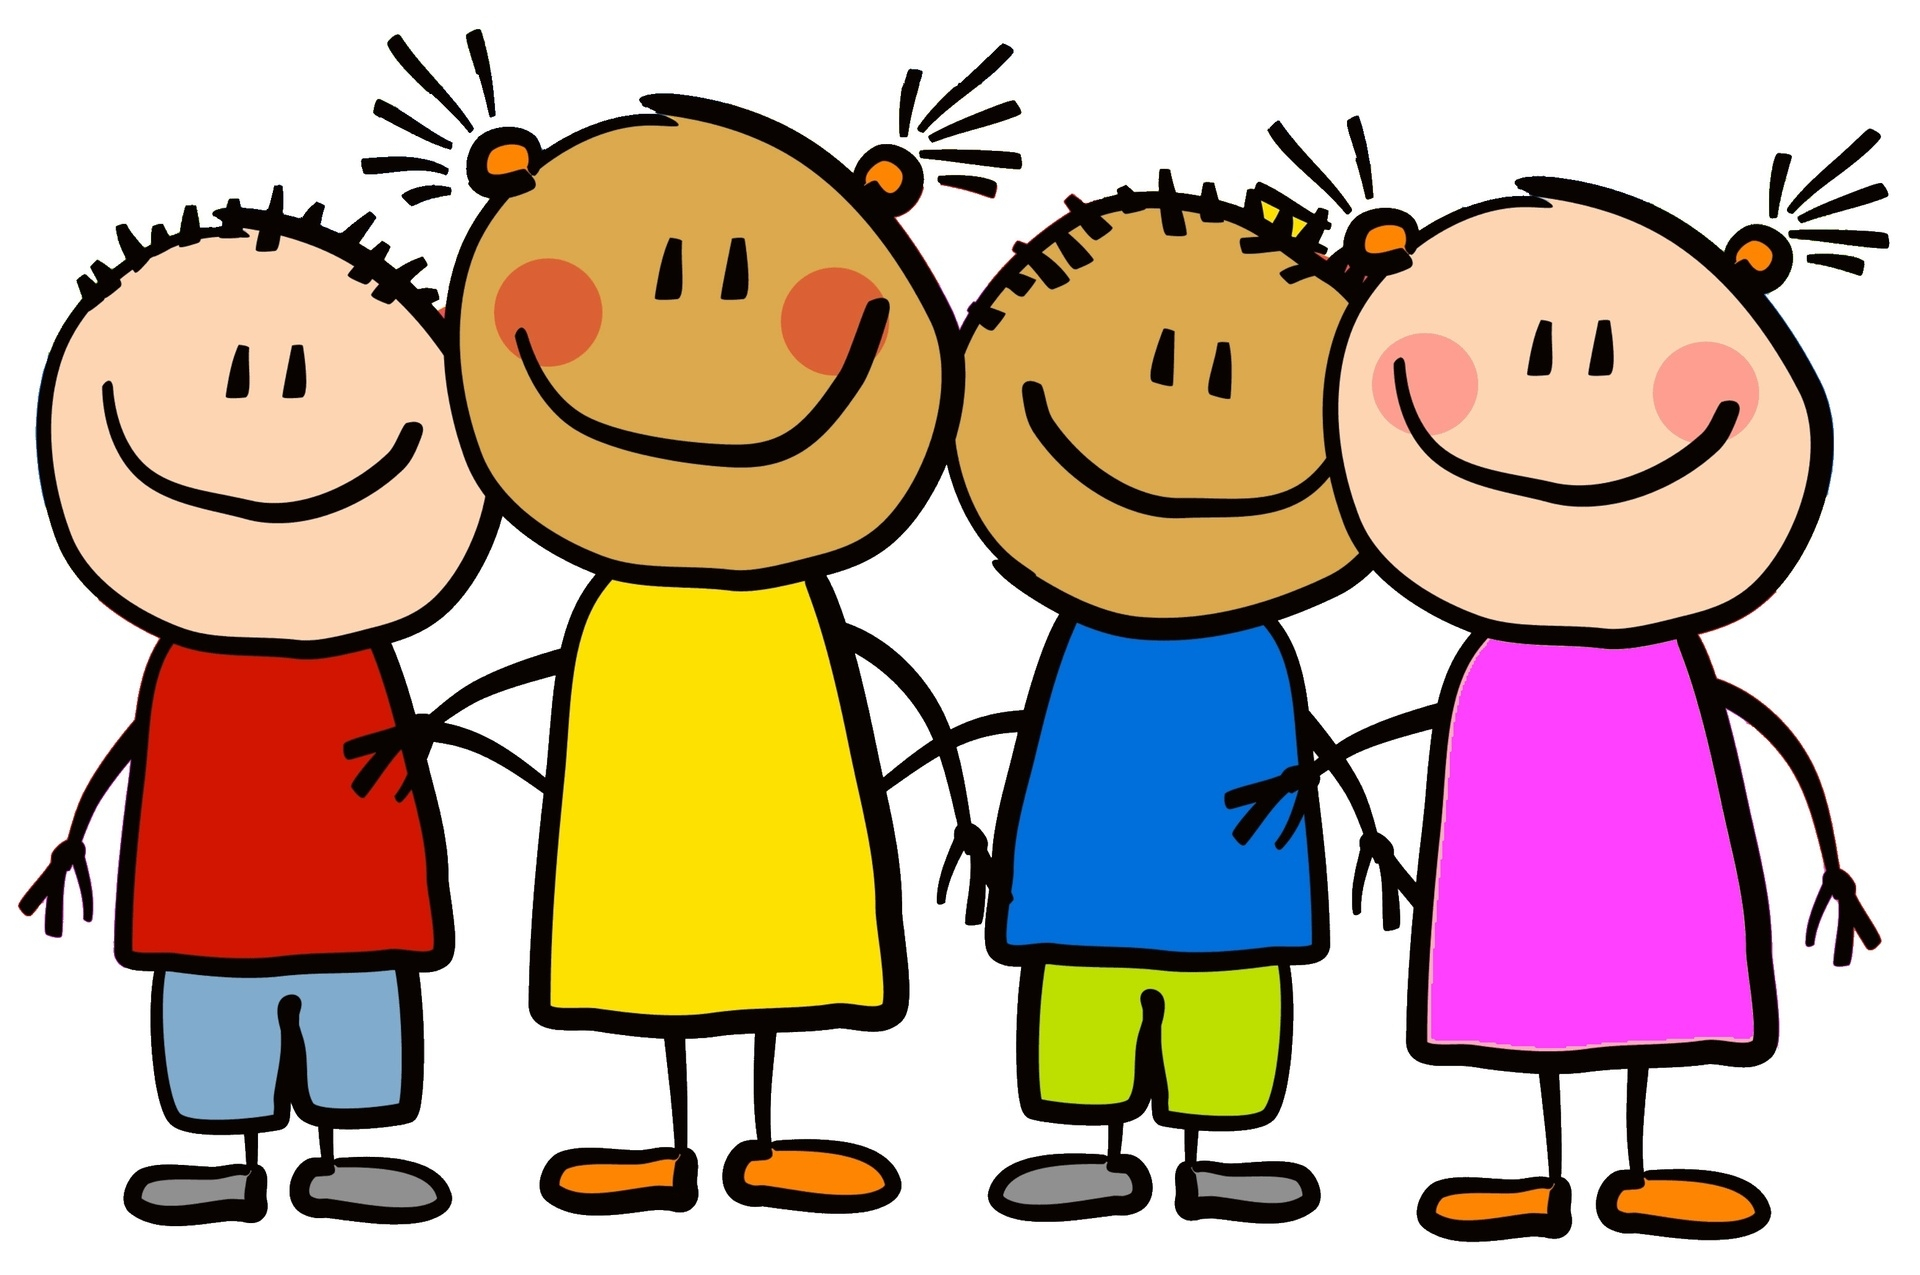 Daycare clipart. Best of gallery digital